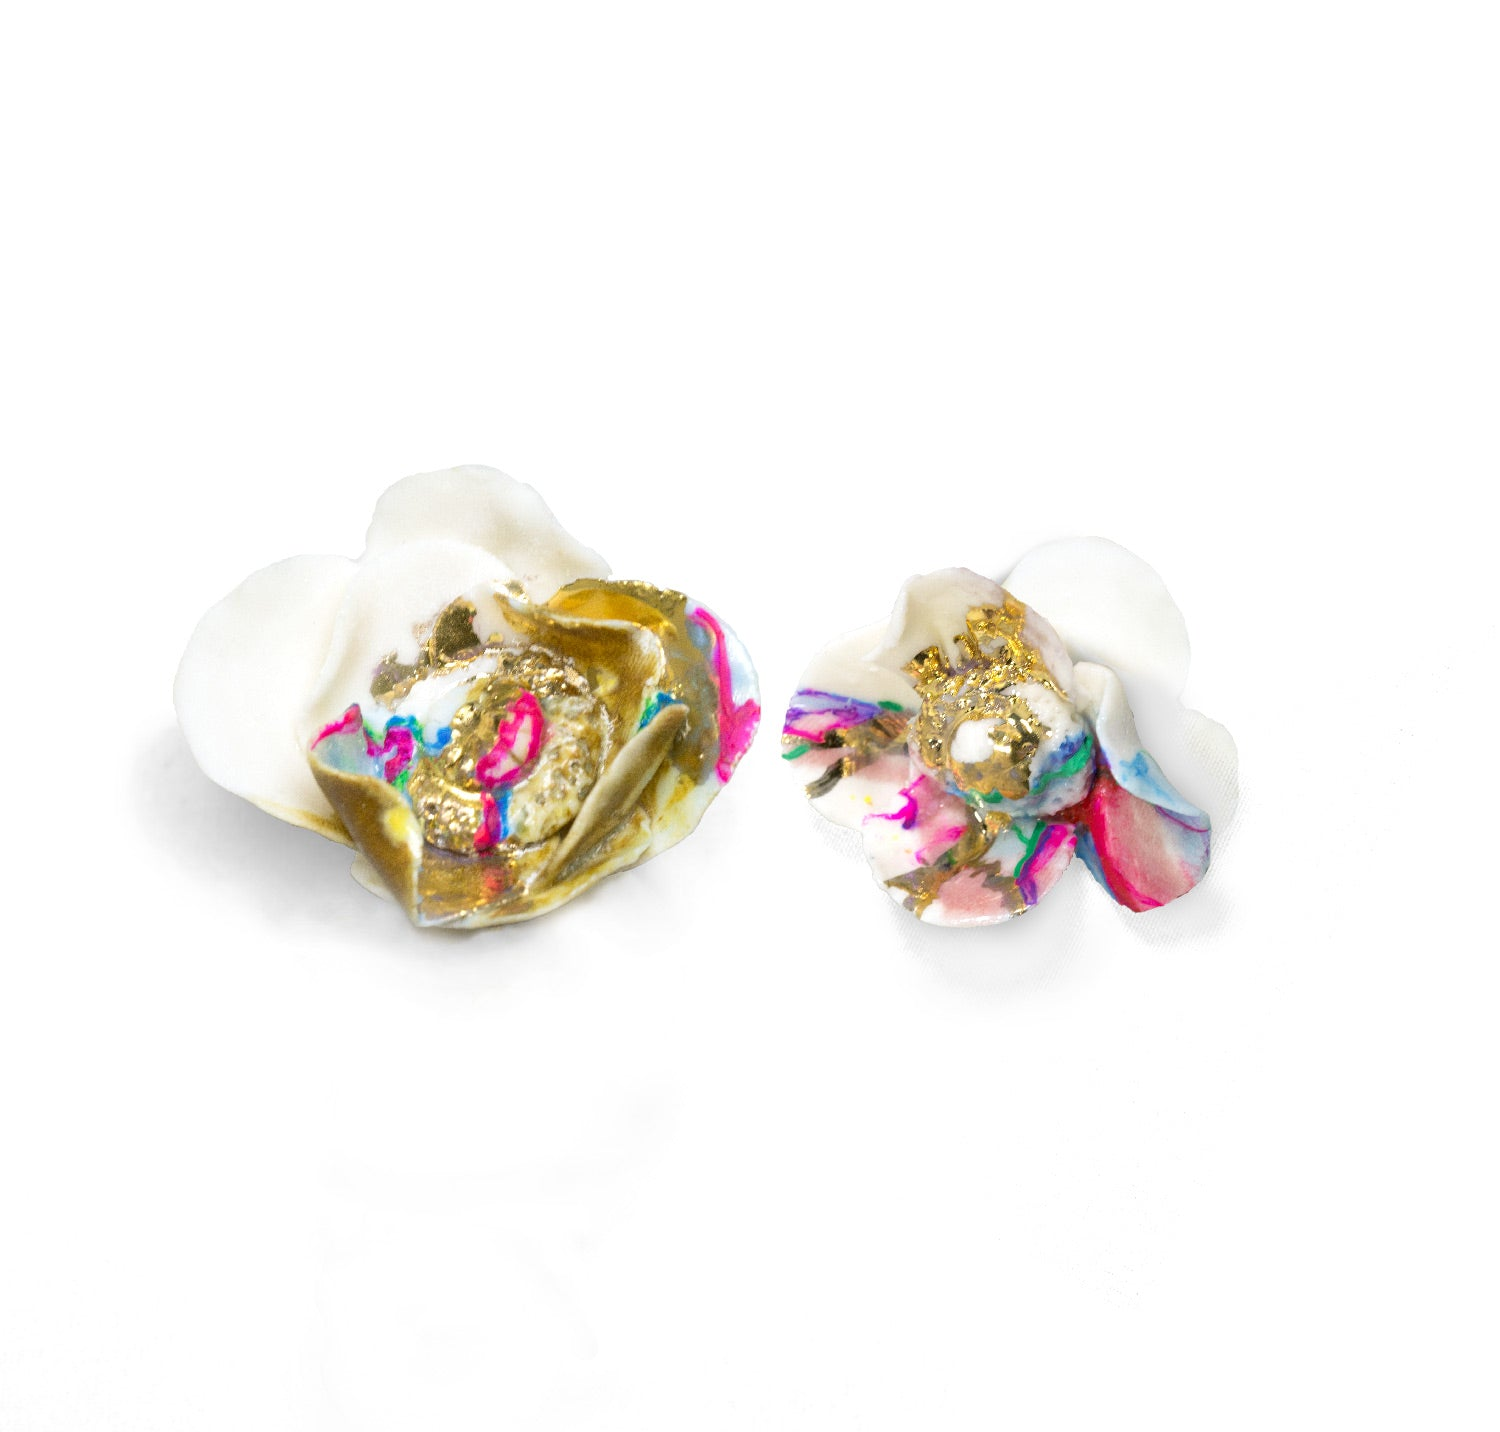 Anali Porcelain Flower Earrings